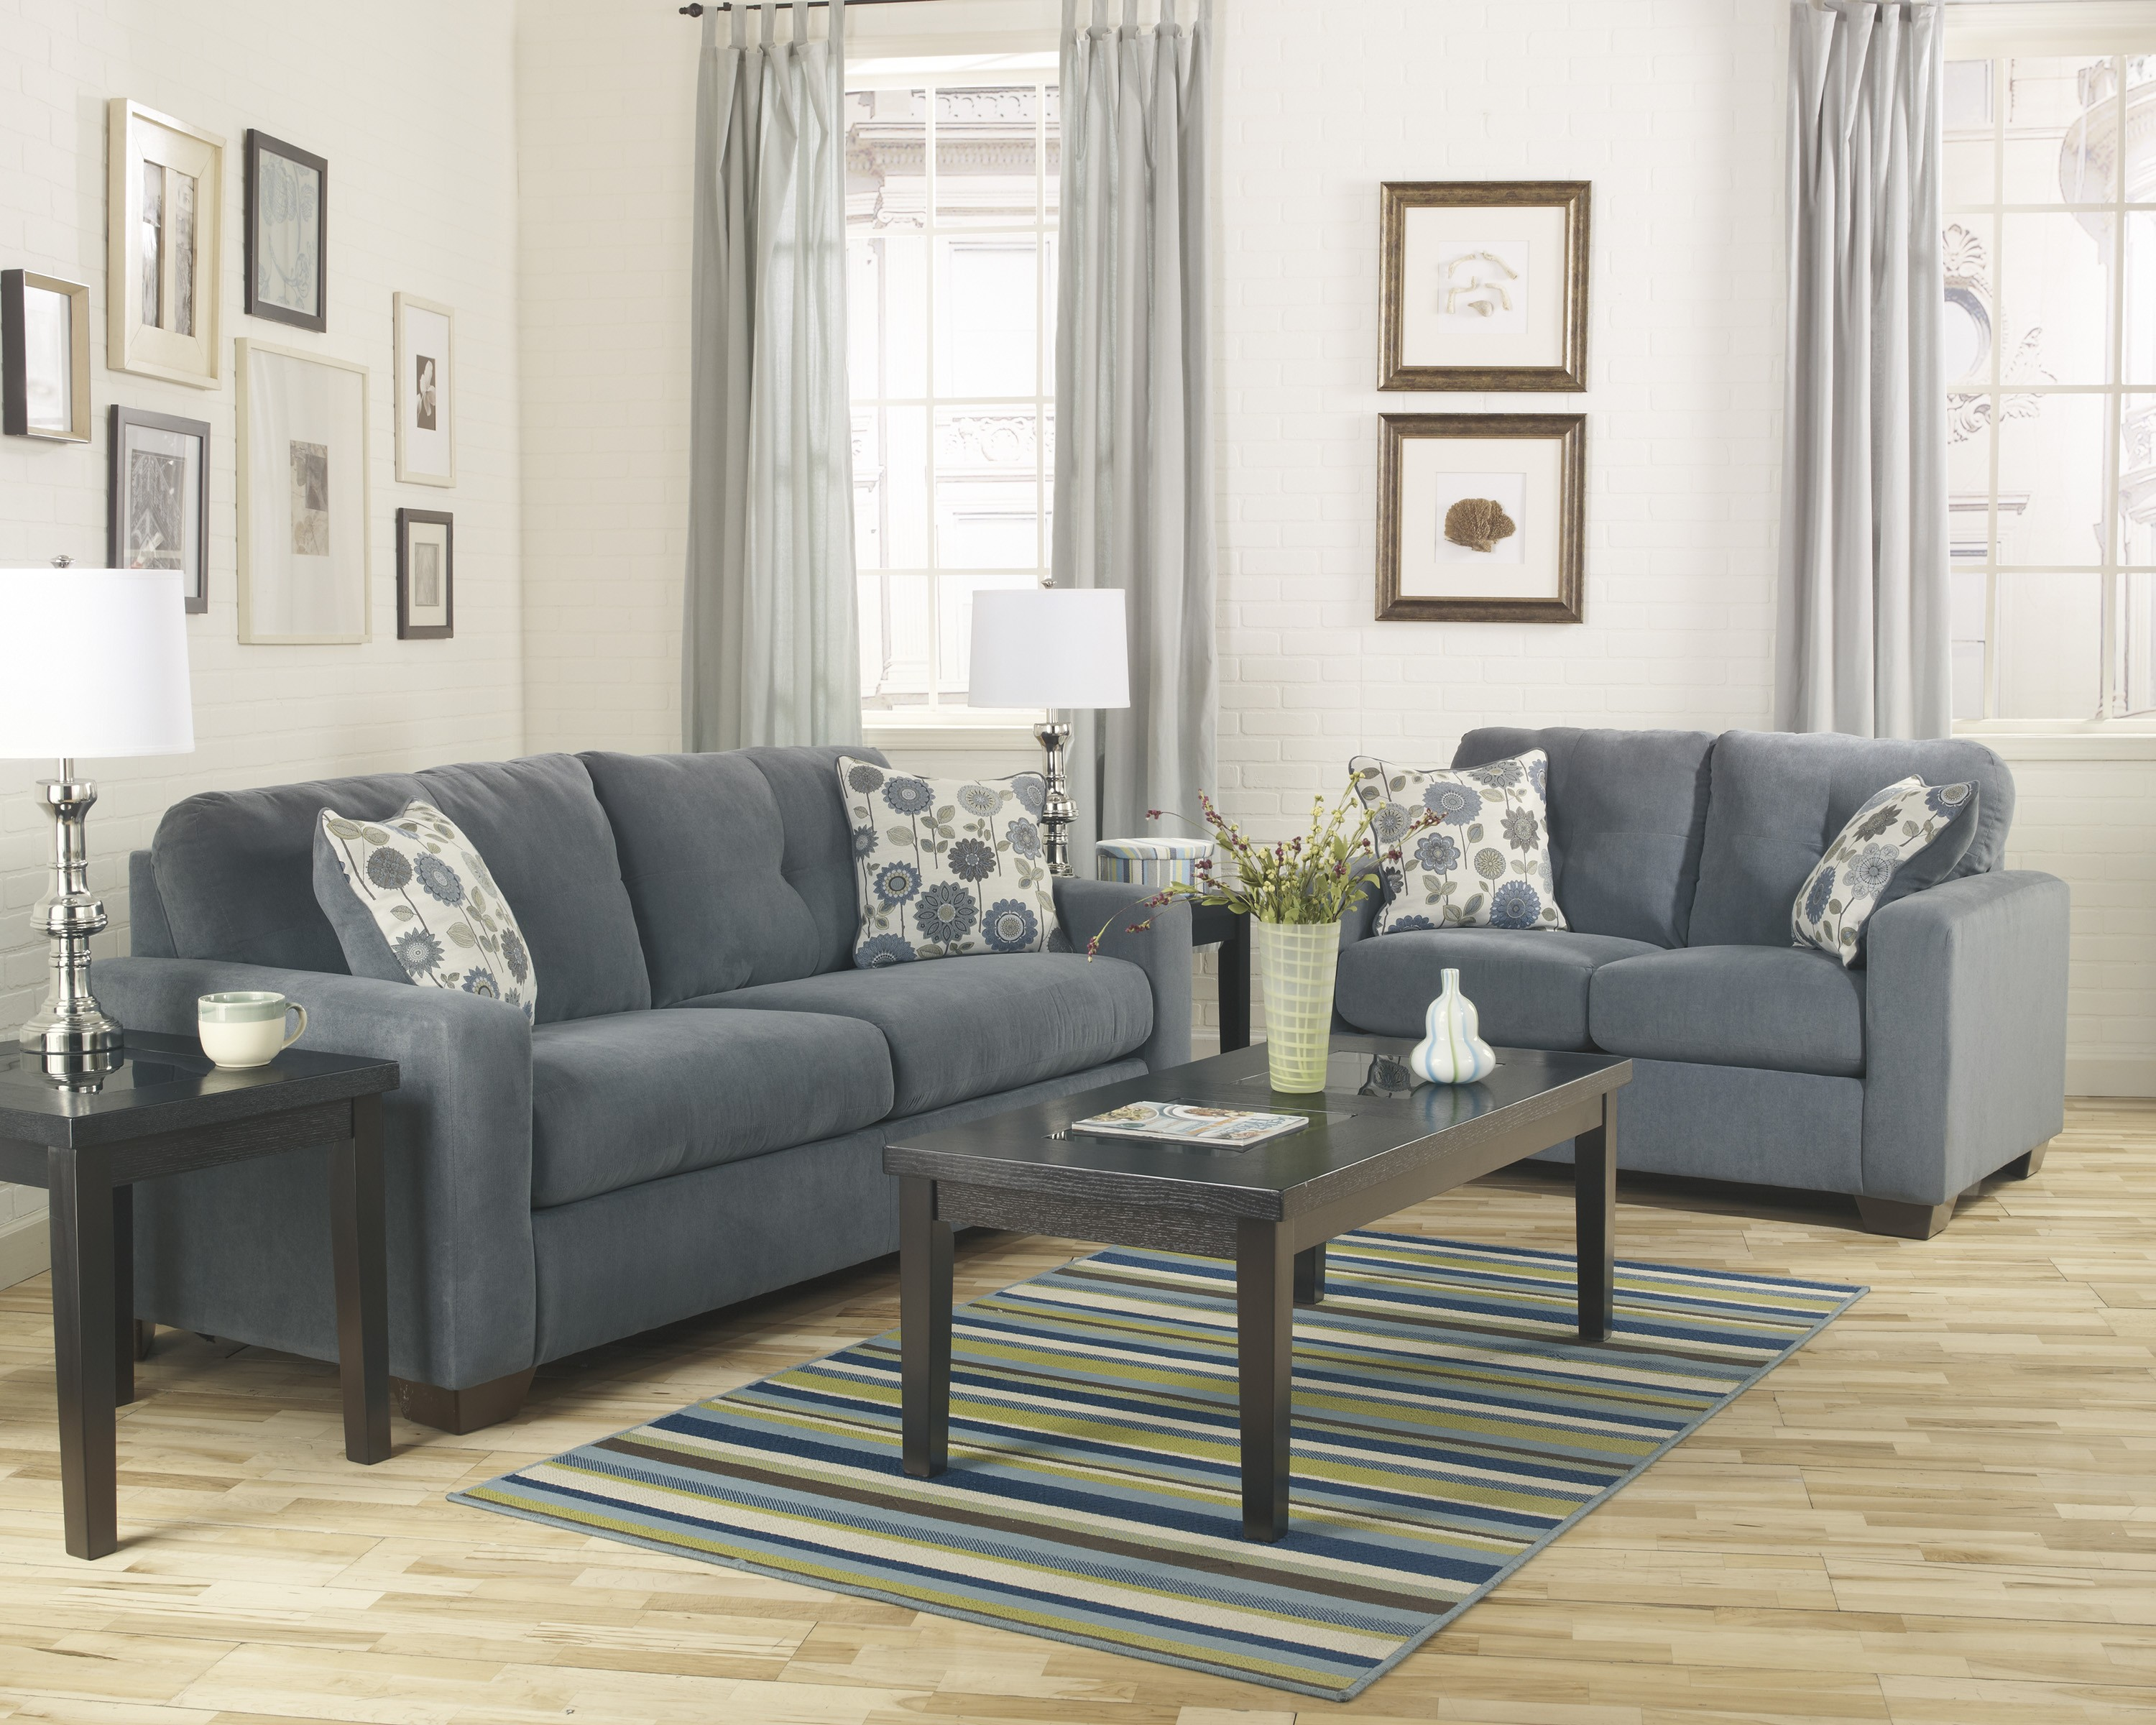 Living Room Design Attractive Ashley Furniture Tucson For Home